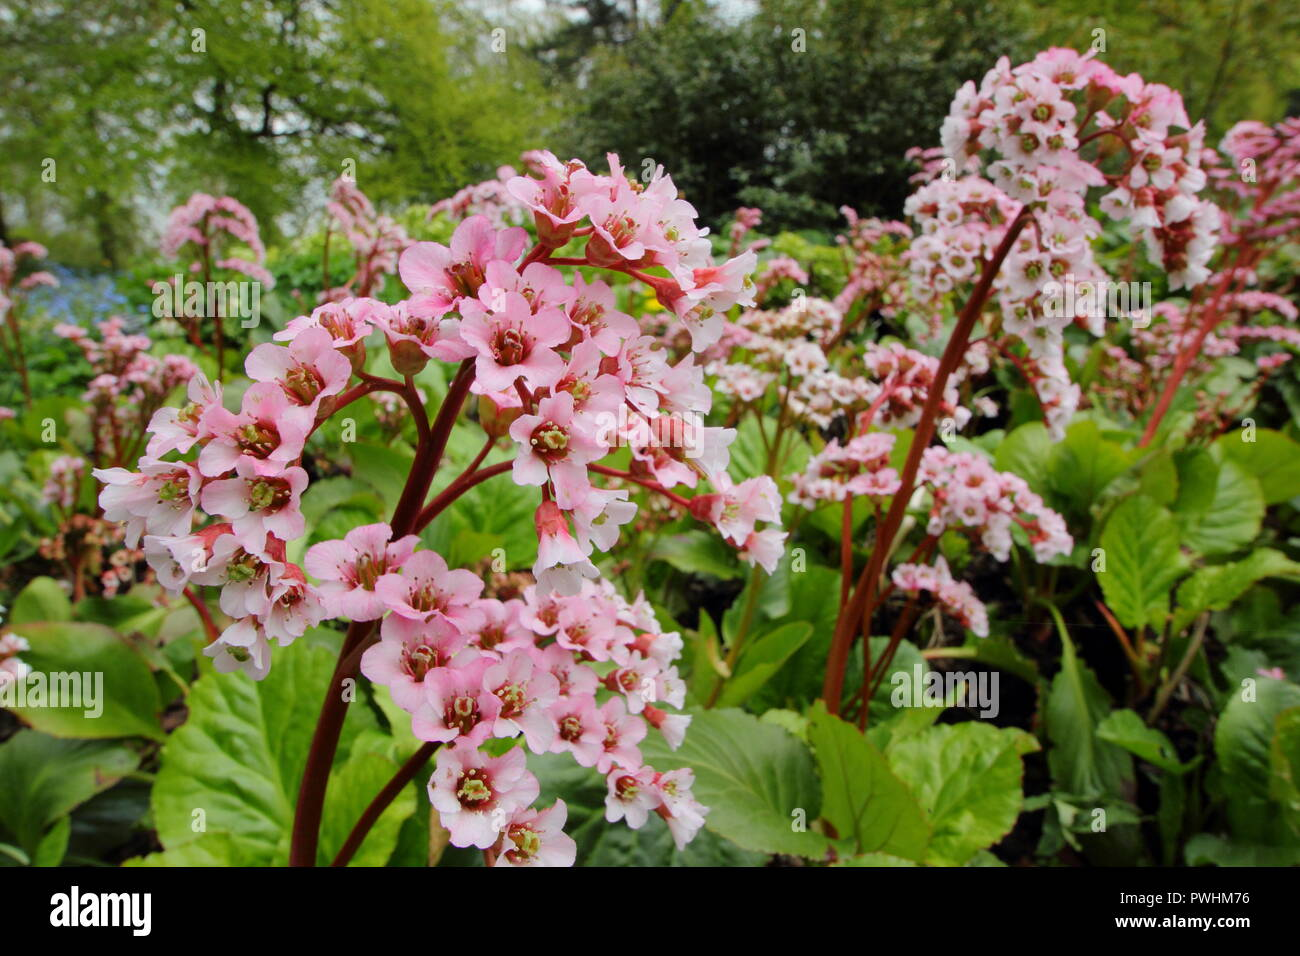 Elephant Ears Plant High Resolution Stock Photography And Images Alamy